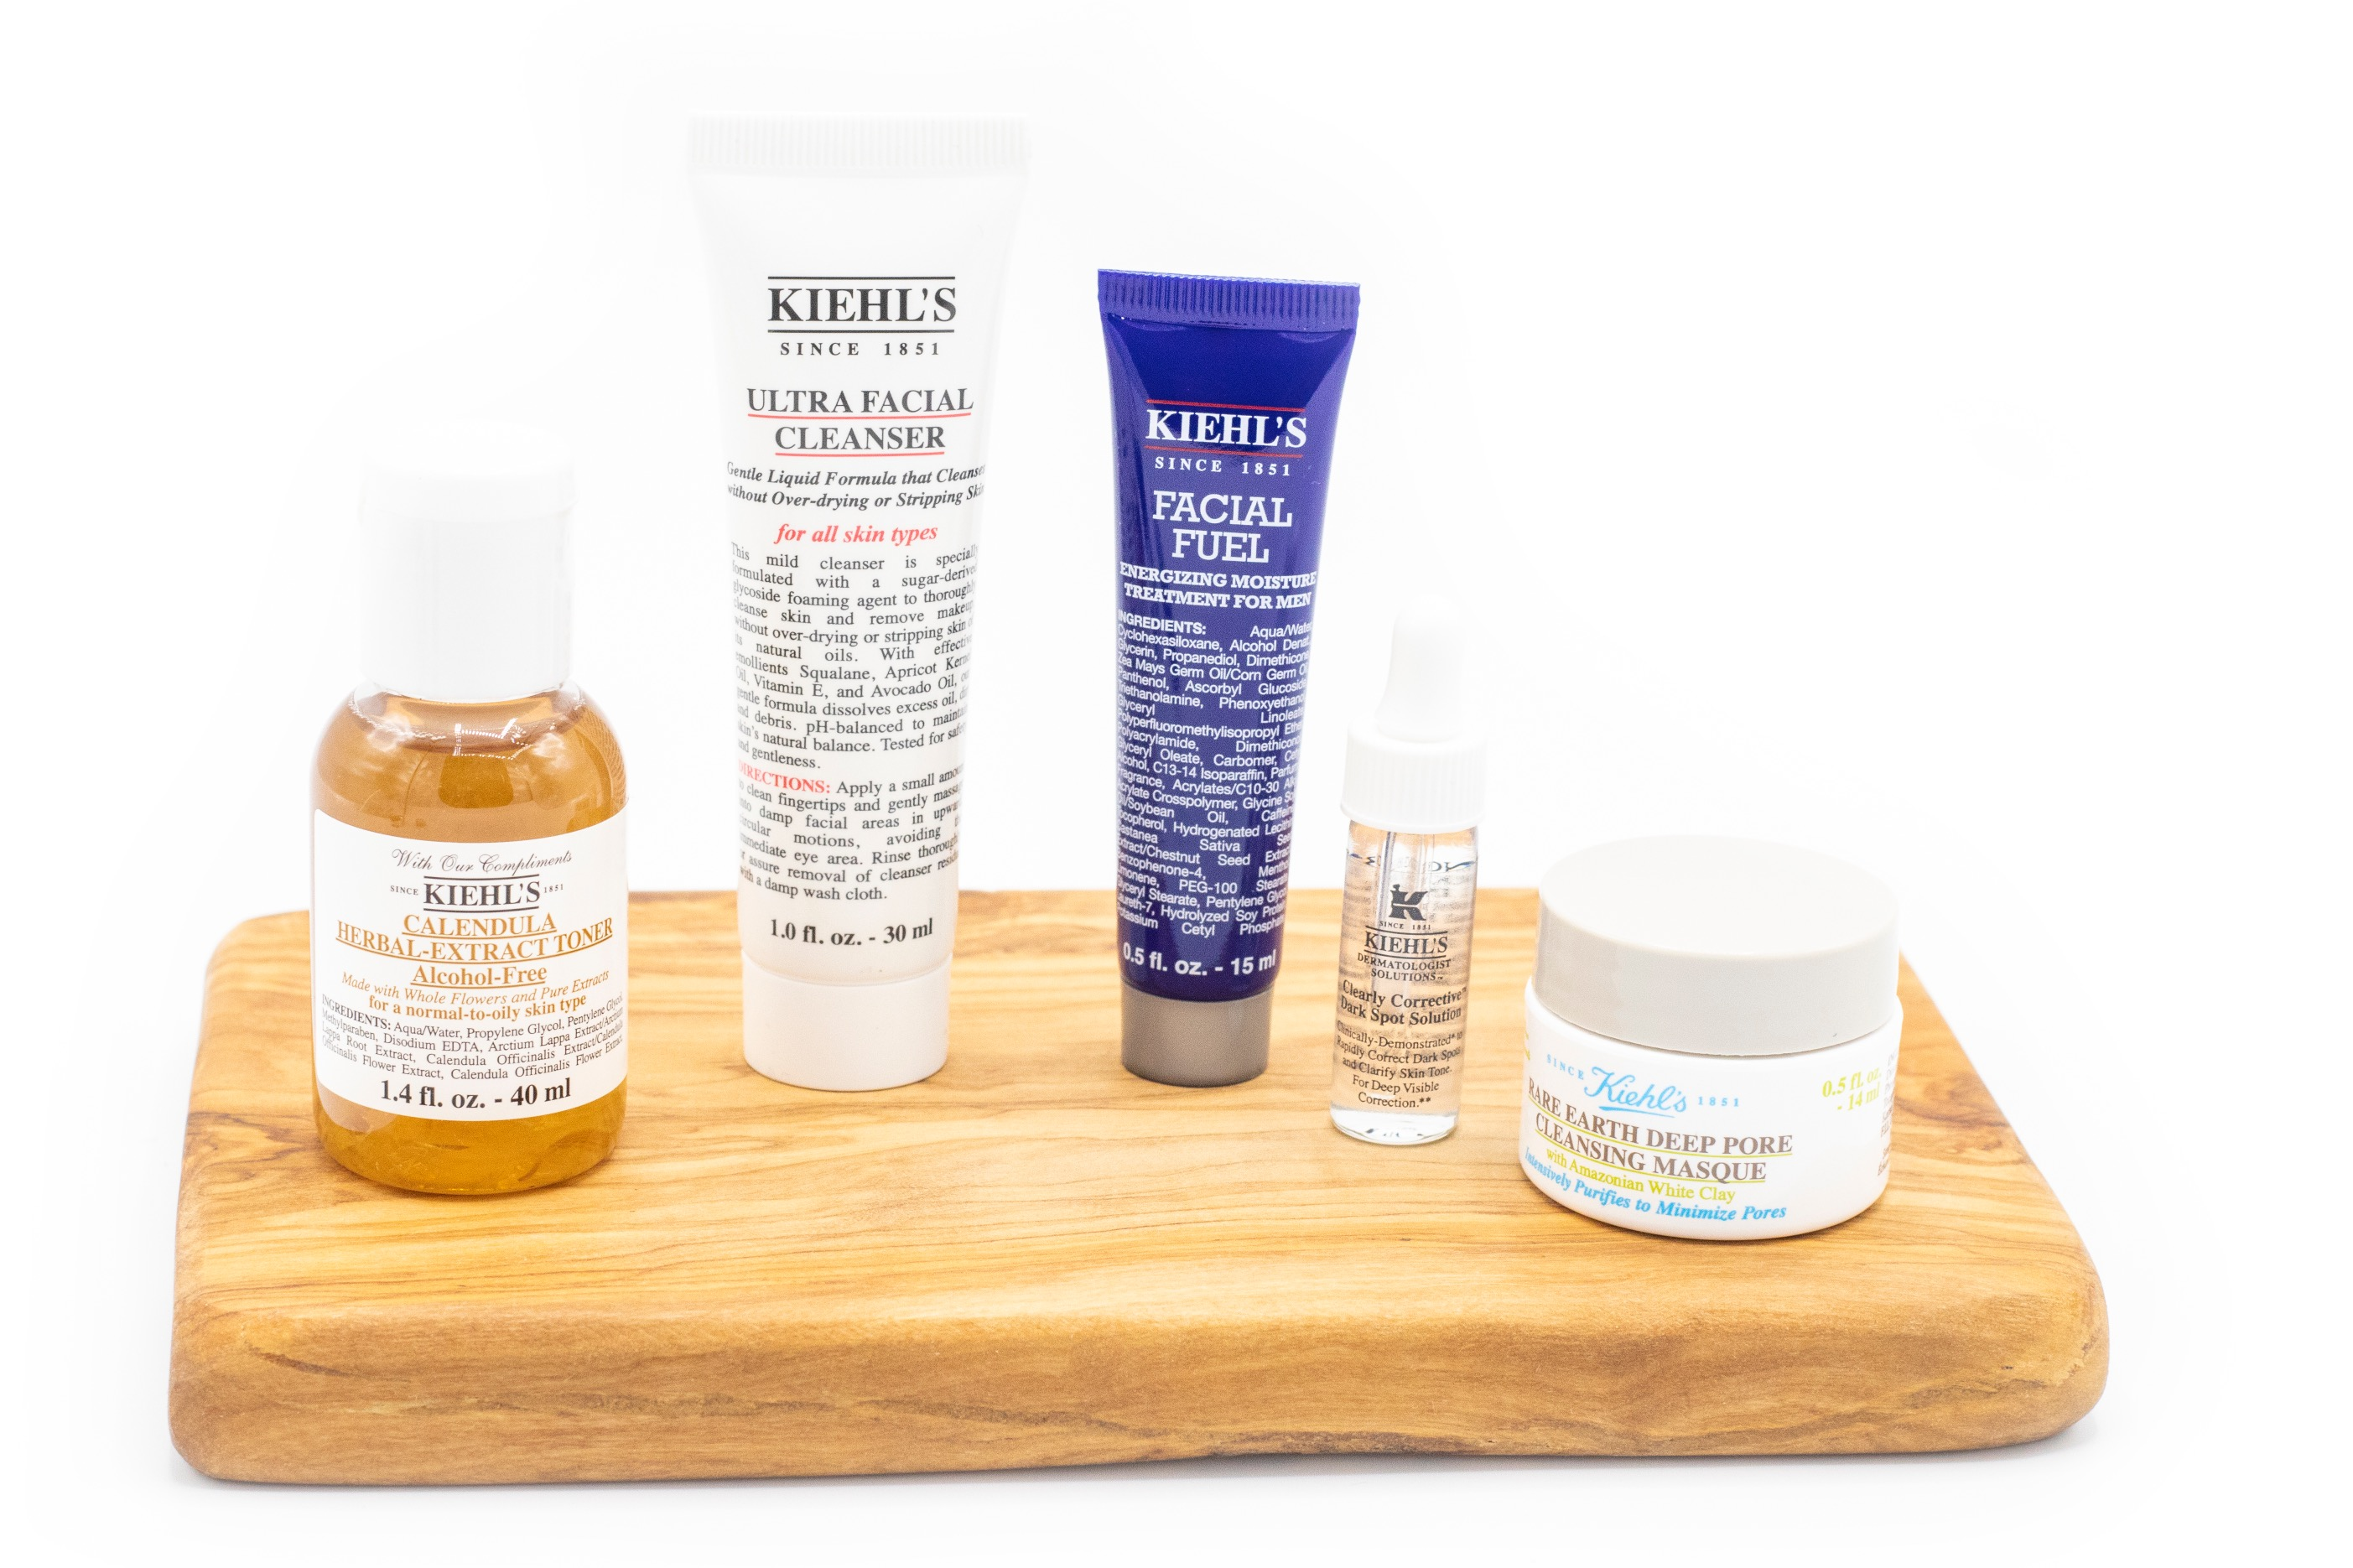 kiehl's canal house producten